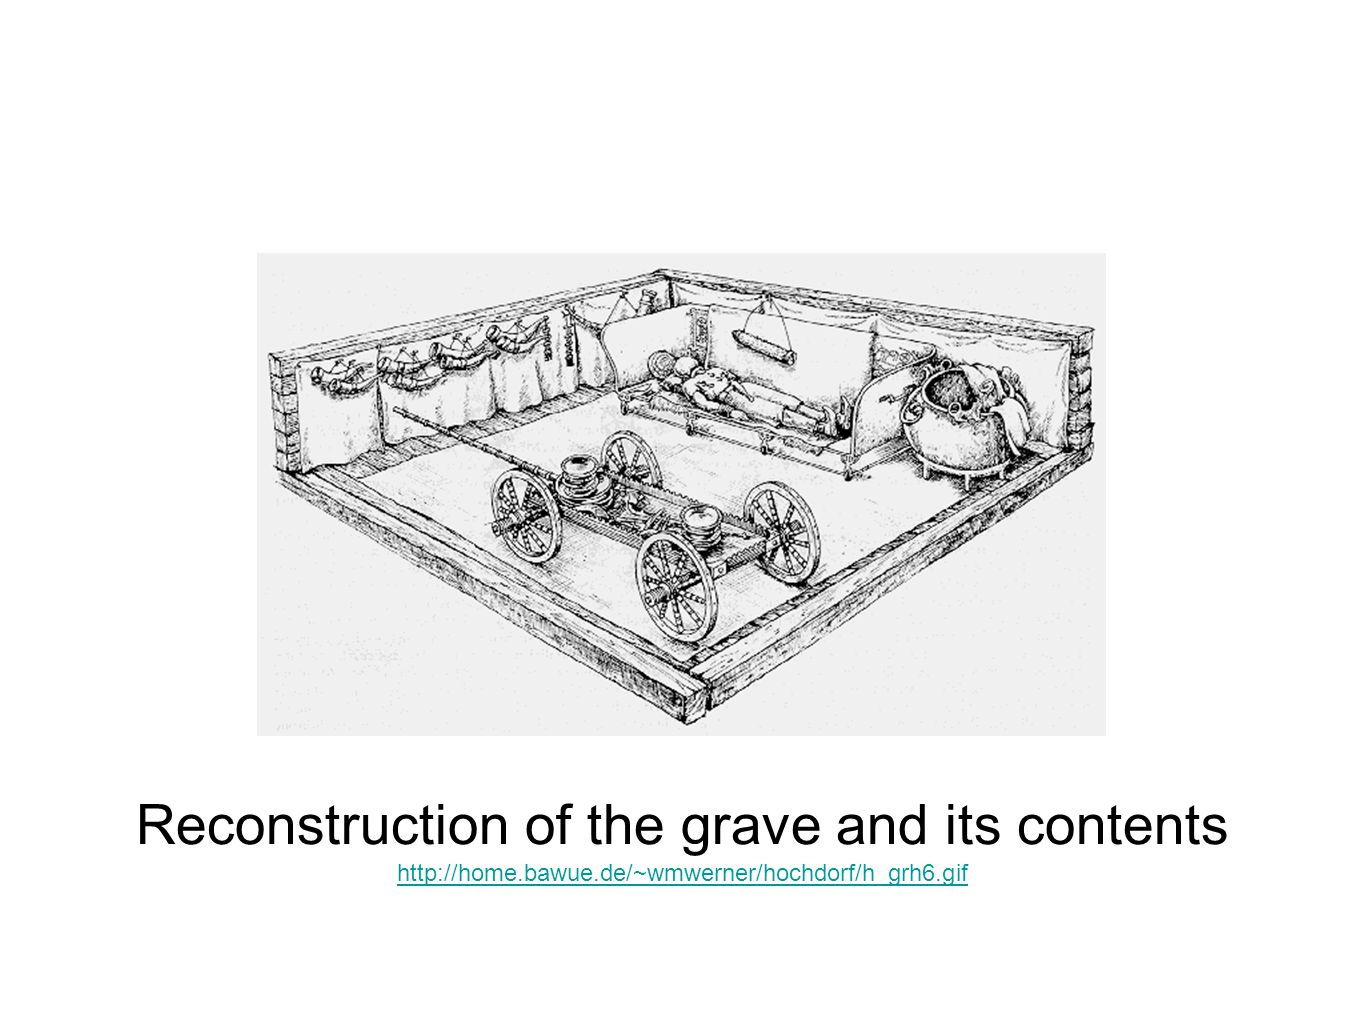 Reconstruction of the grave and its contents